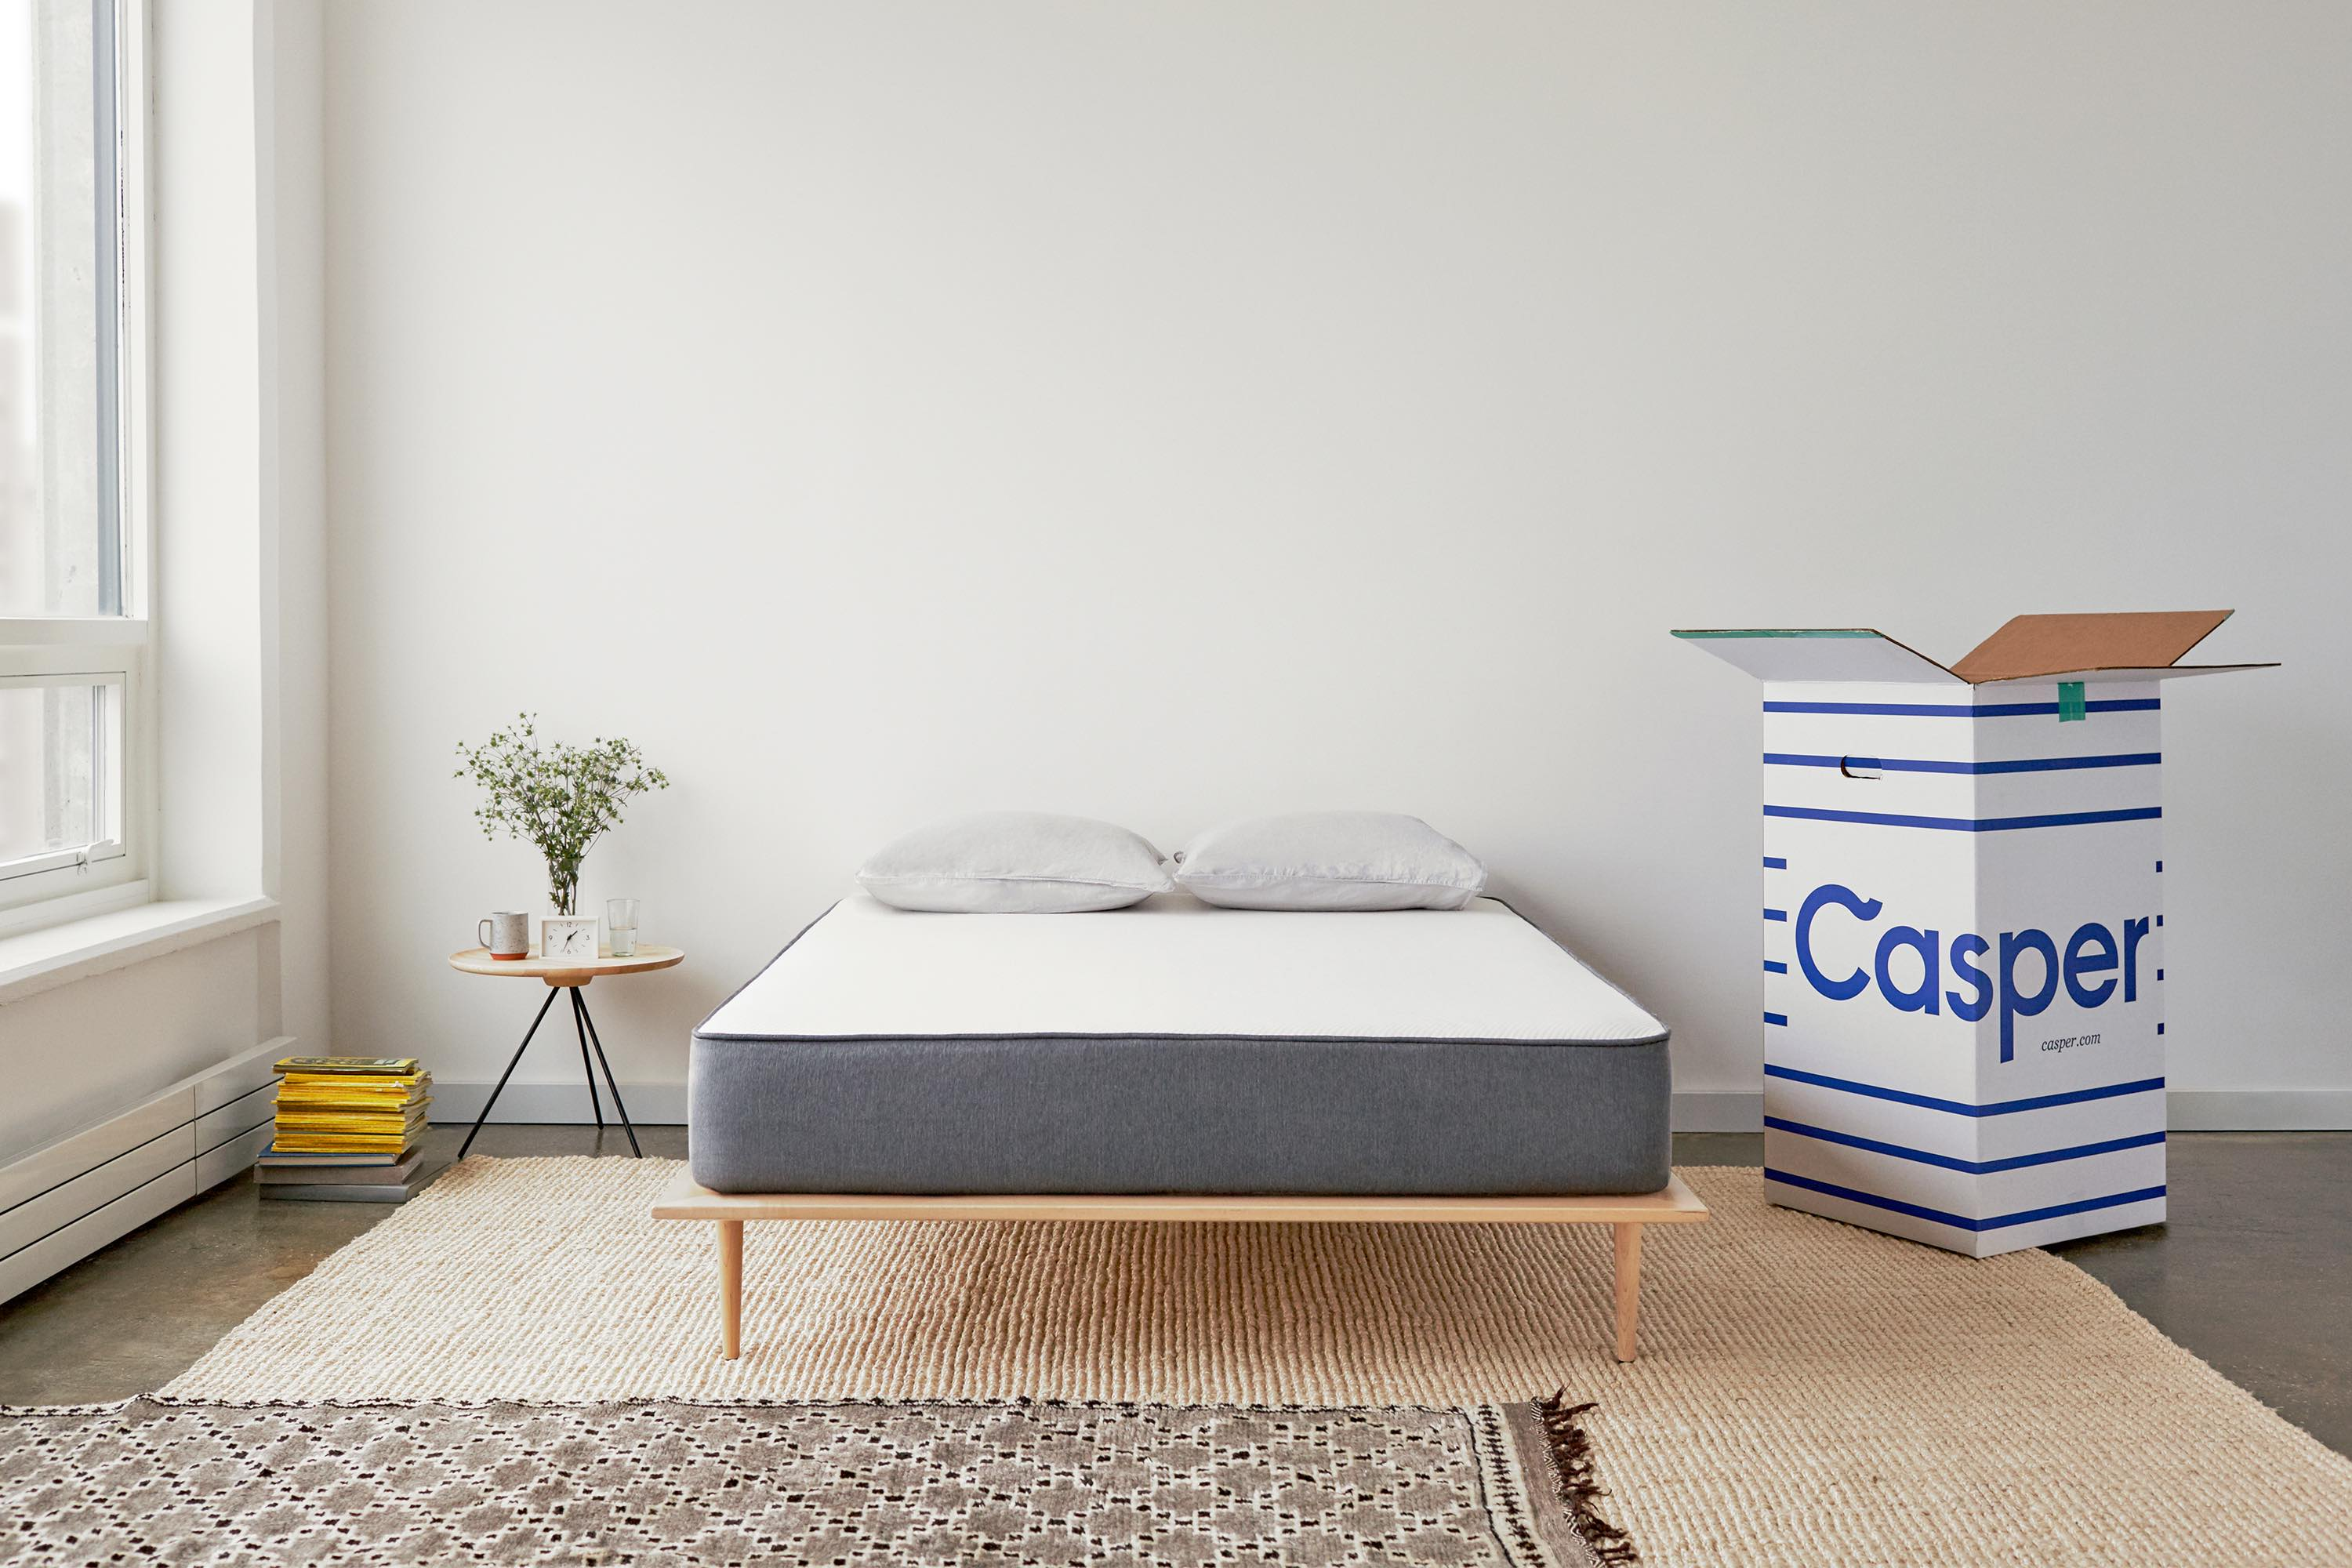 quel est le prix du matelas casper comparatif matelas. Black Bedroom Furniture Sets. Home Design Ideas